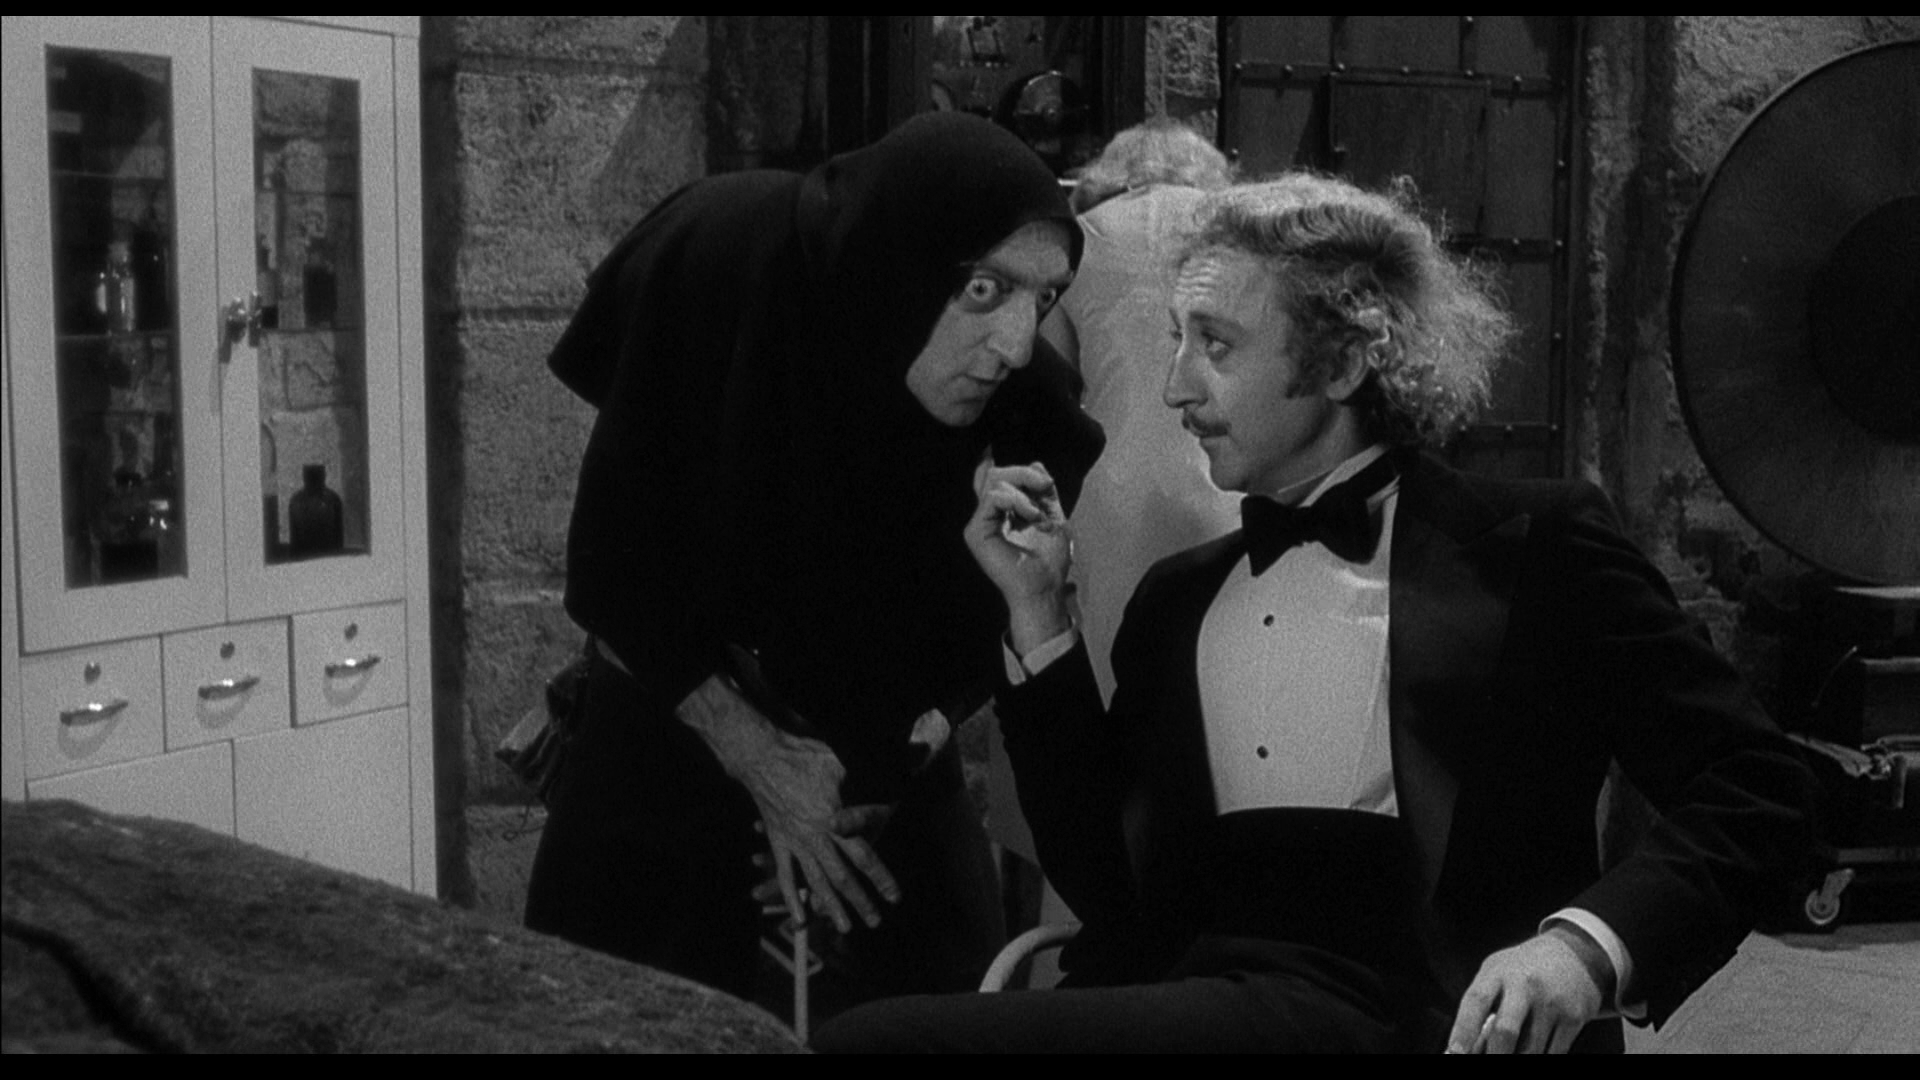 Pin by 莲草莓 on Young Frankenstein Young frankenstein